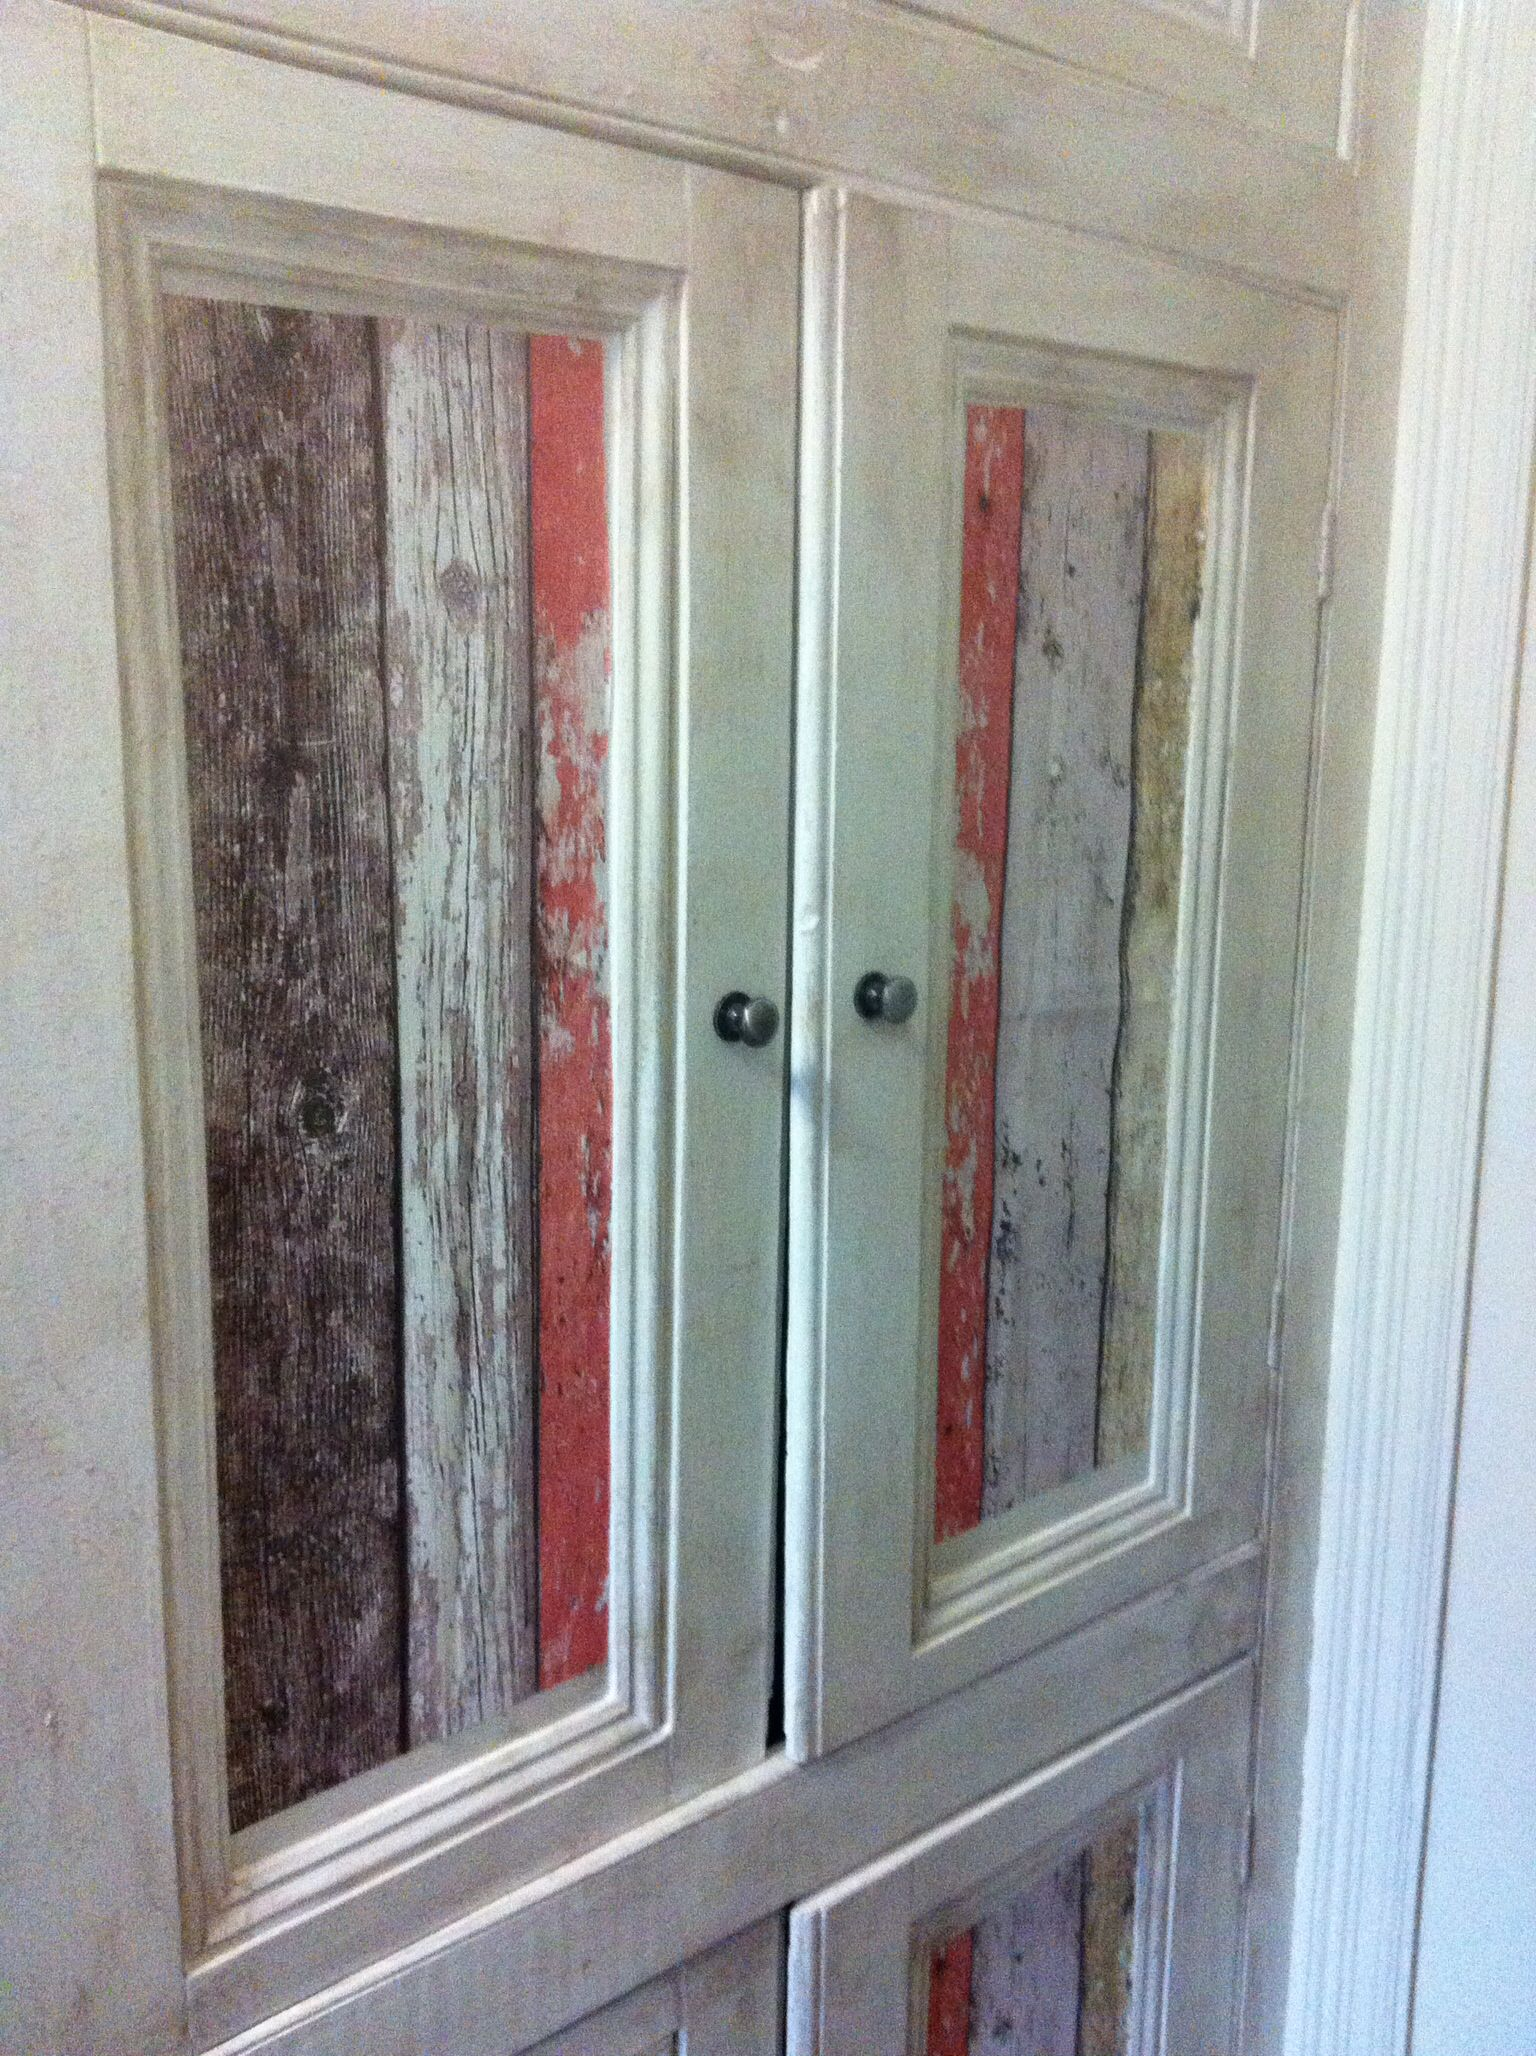 My customised shabby chic beach hut inspired bathroom cabinet. I ...